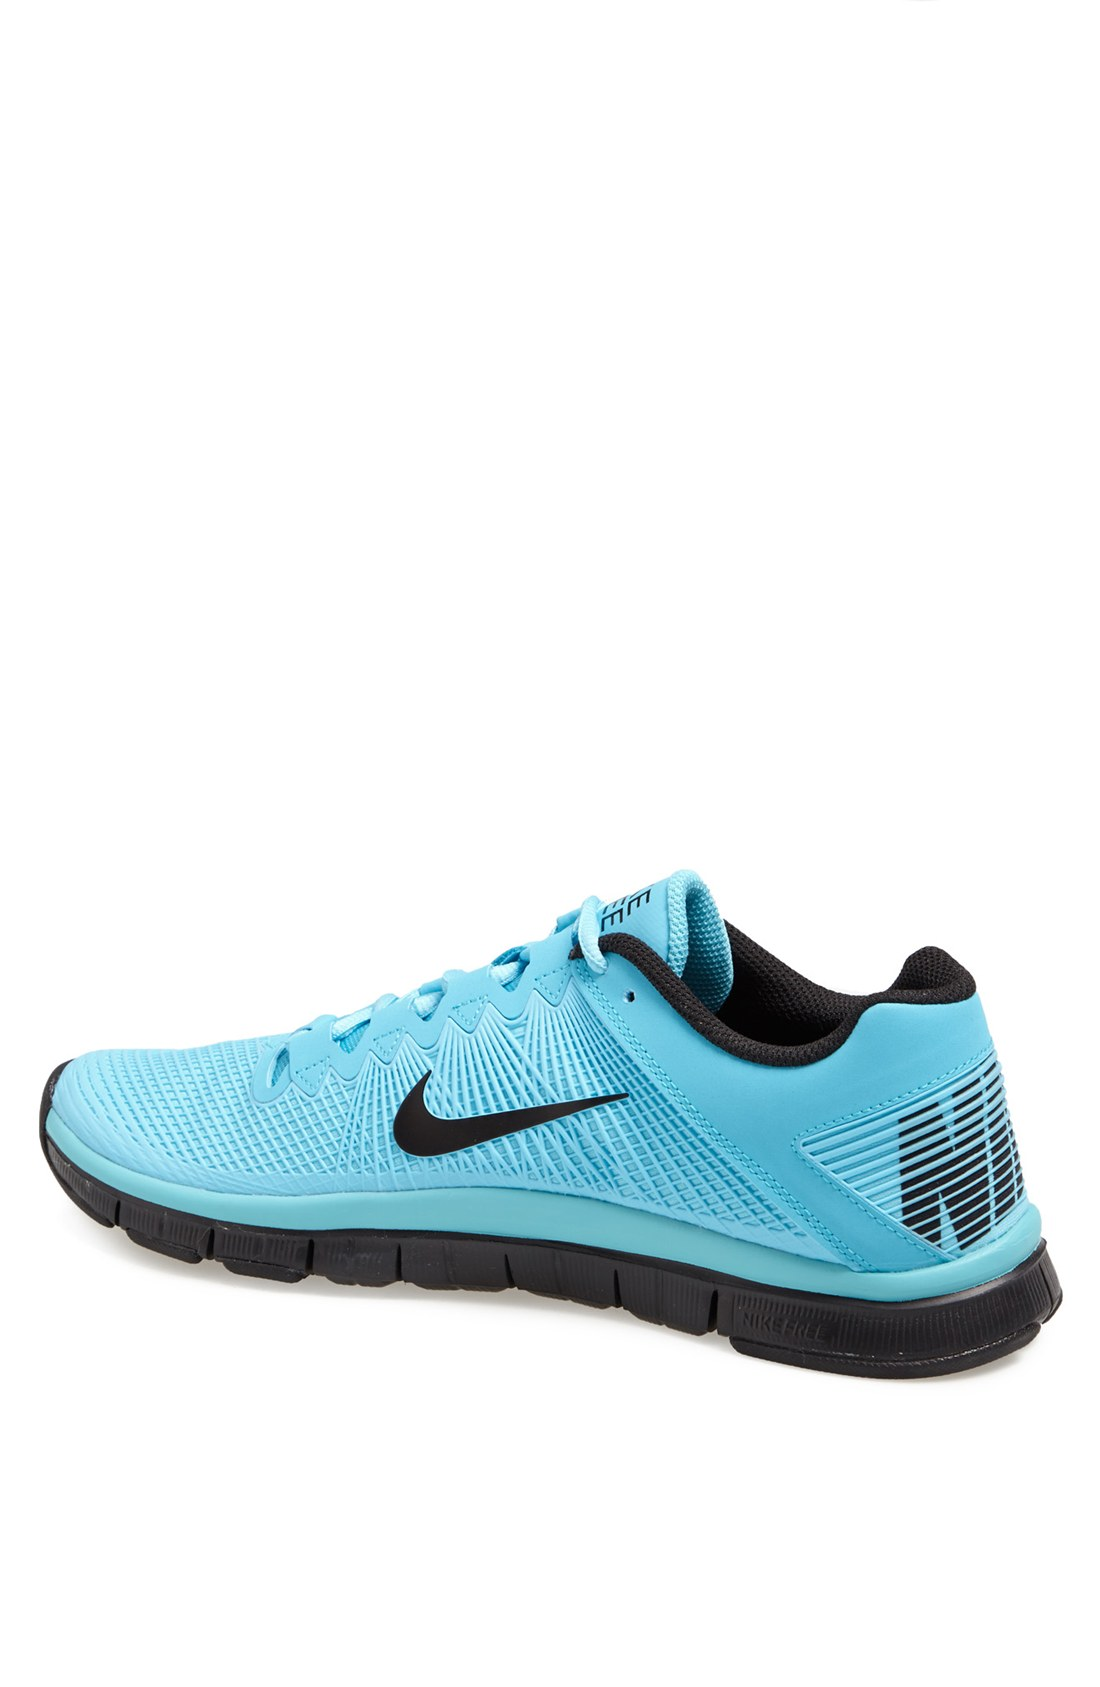 quality design 78510 66769 nike free run 30 trainer